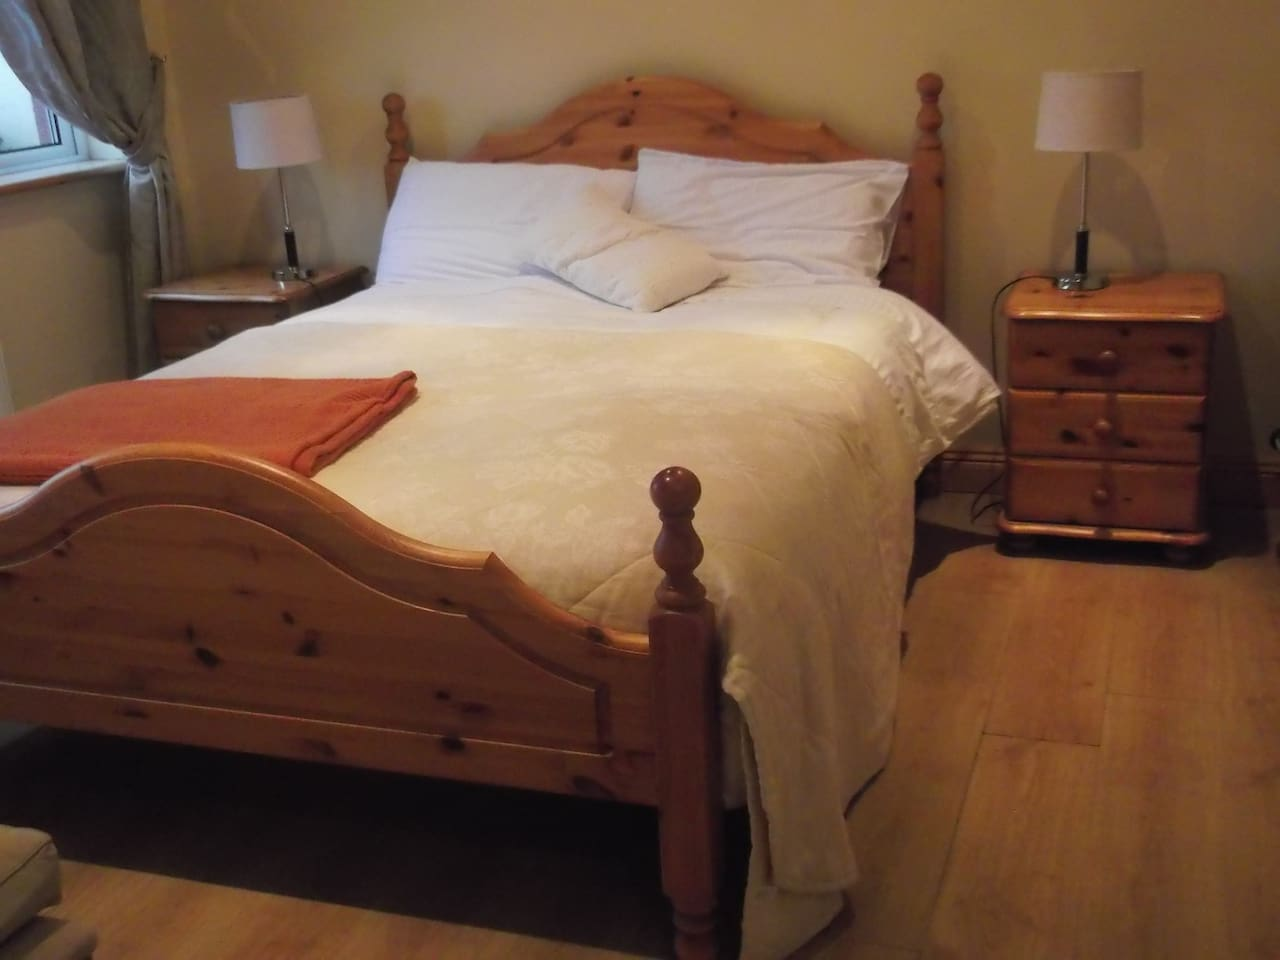 Spacious apartment with Double bed as displayed.